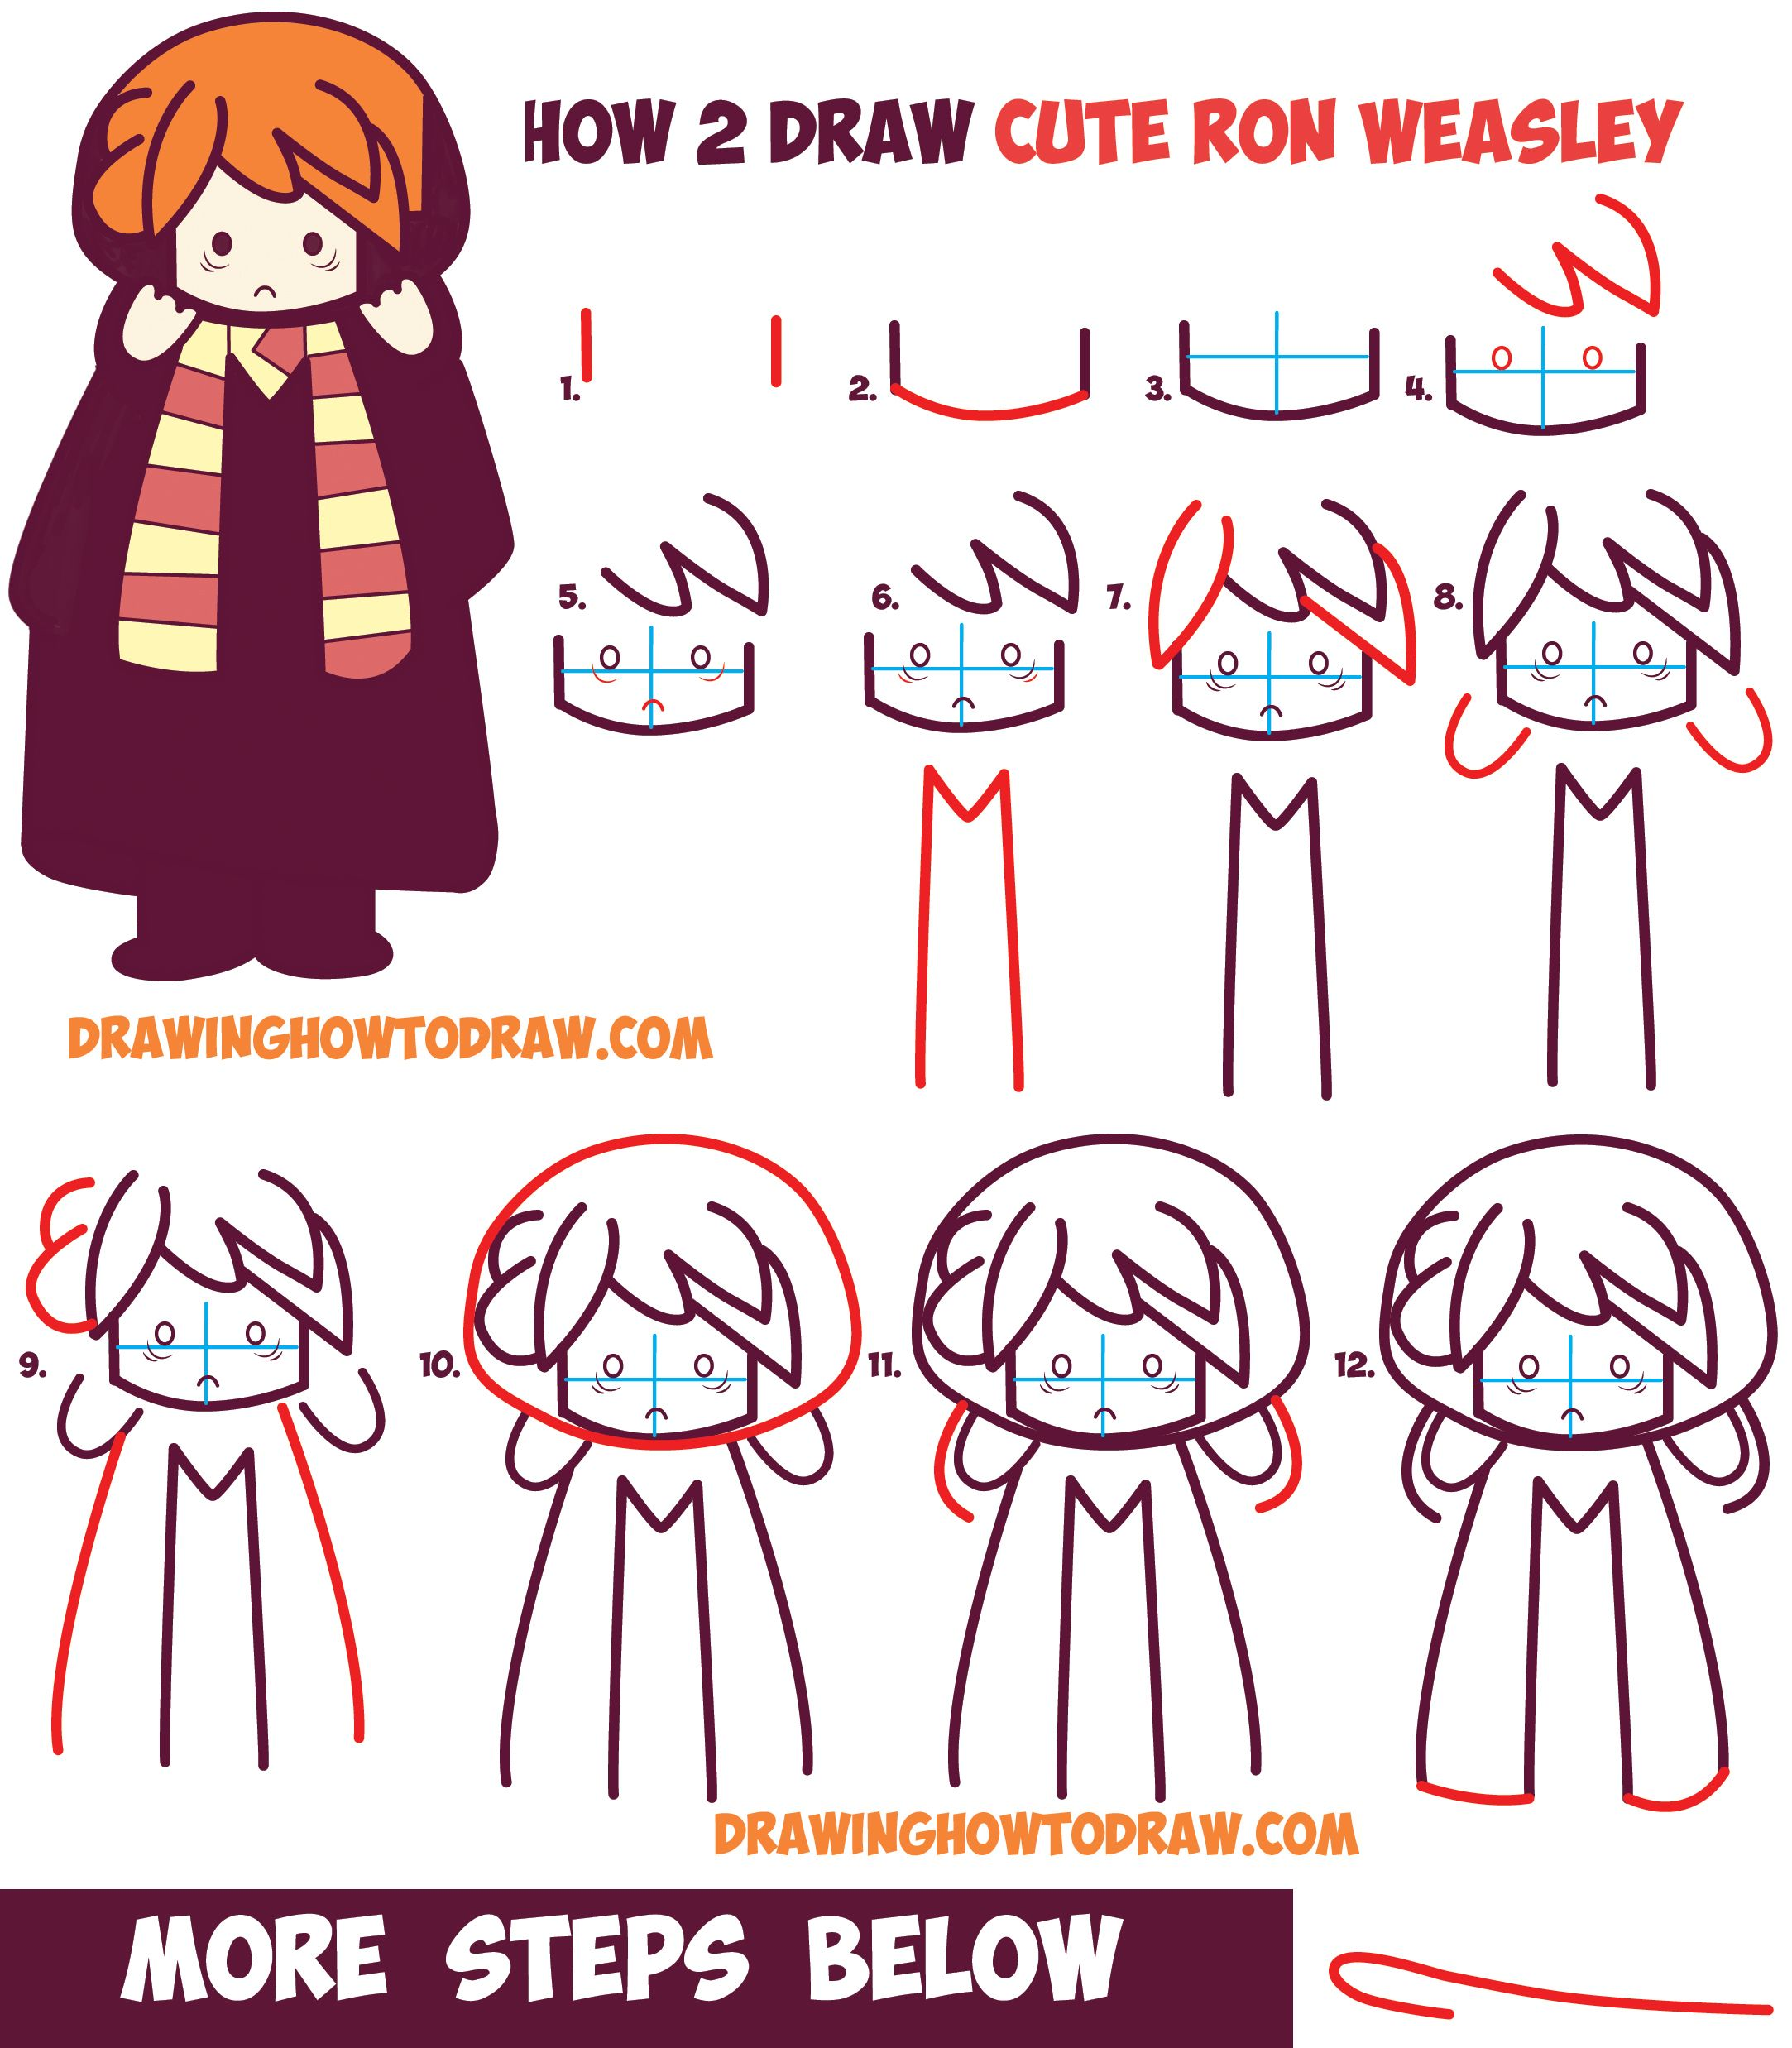 How to draw cute ron weasley from harry potter chibi kawaii easy step by step drawing tutorial - Harry potter dessin ...